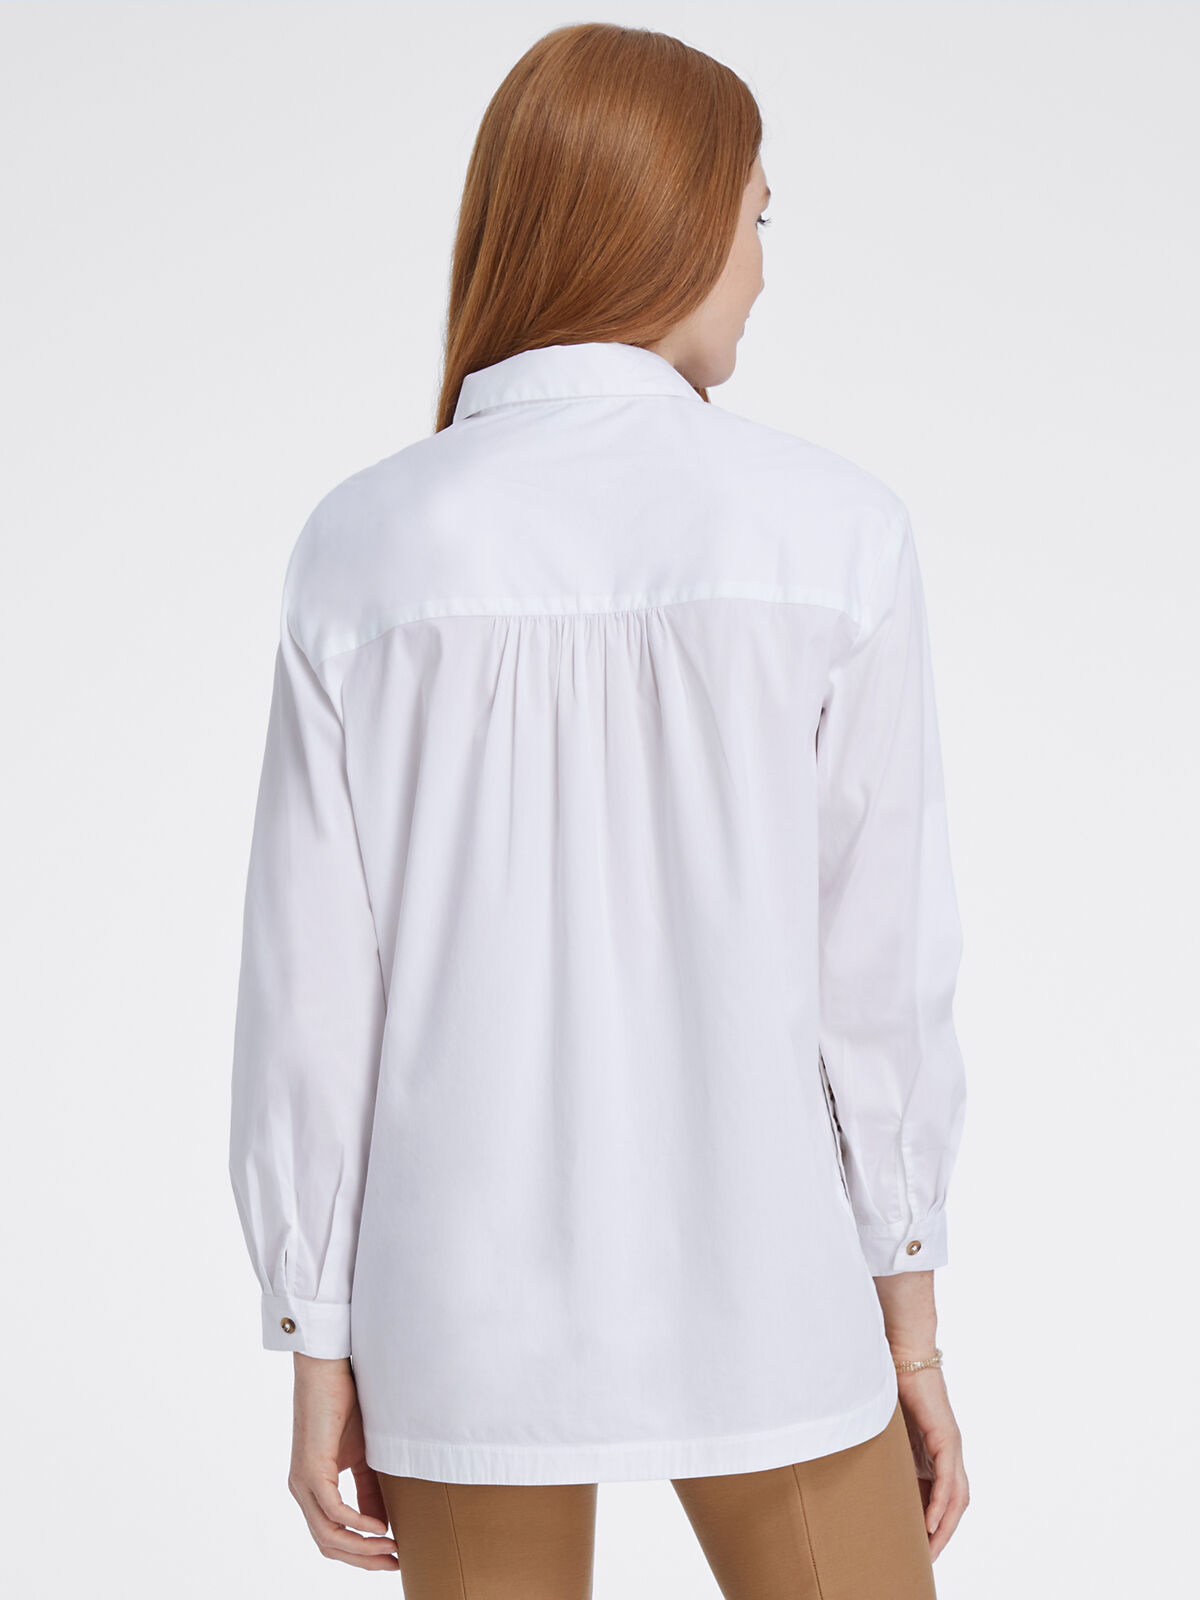 Clean And Classic Shirt